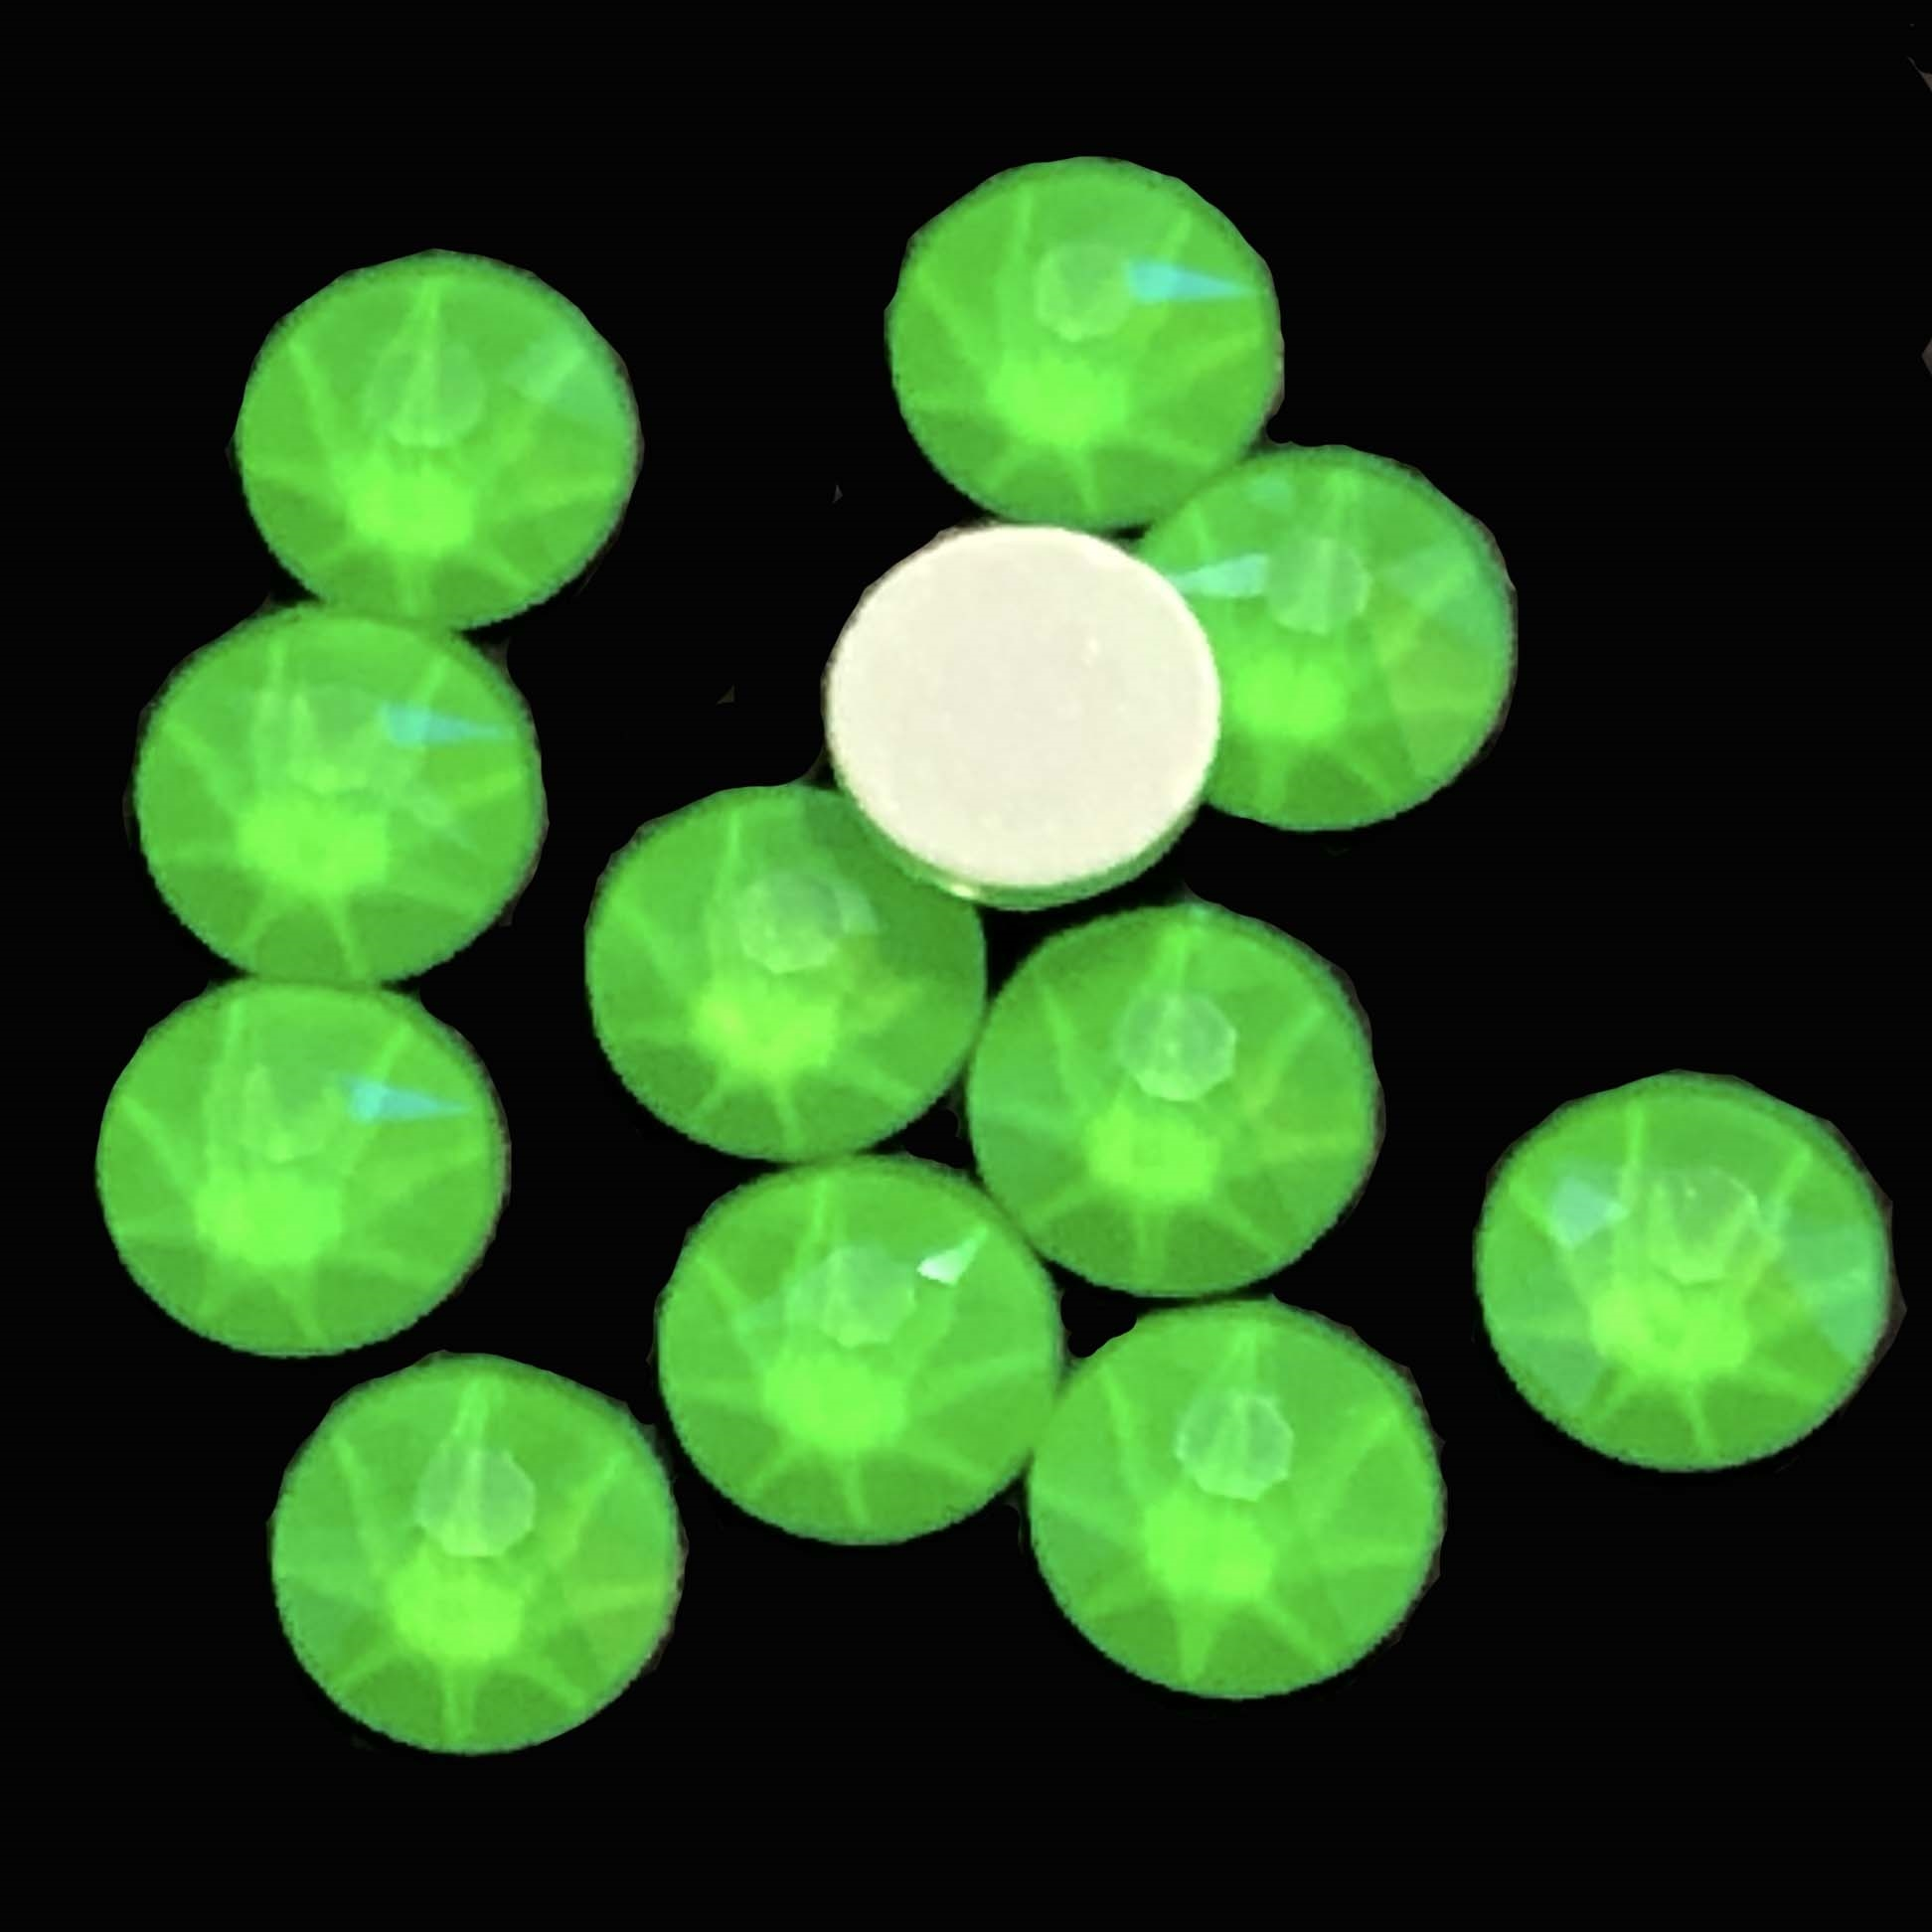 4mm, 16ss, Glow in the Dark, Electric Green, 09382, rhinestone, stone, Czech glass, flatback, flatback rhinestone, 4mm, flatback, sparkle, jewelry making, jewelry findings, B'sue Boutiques, vintage supplies, jewelry supplies